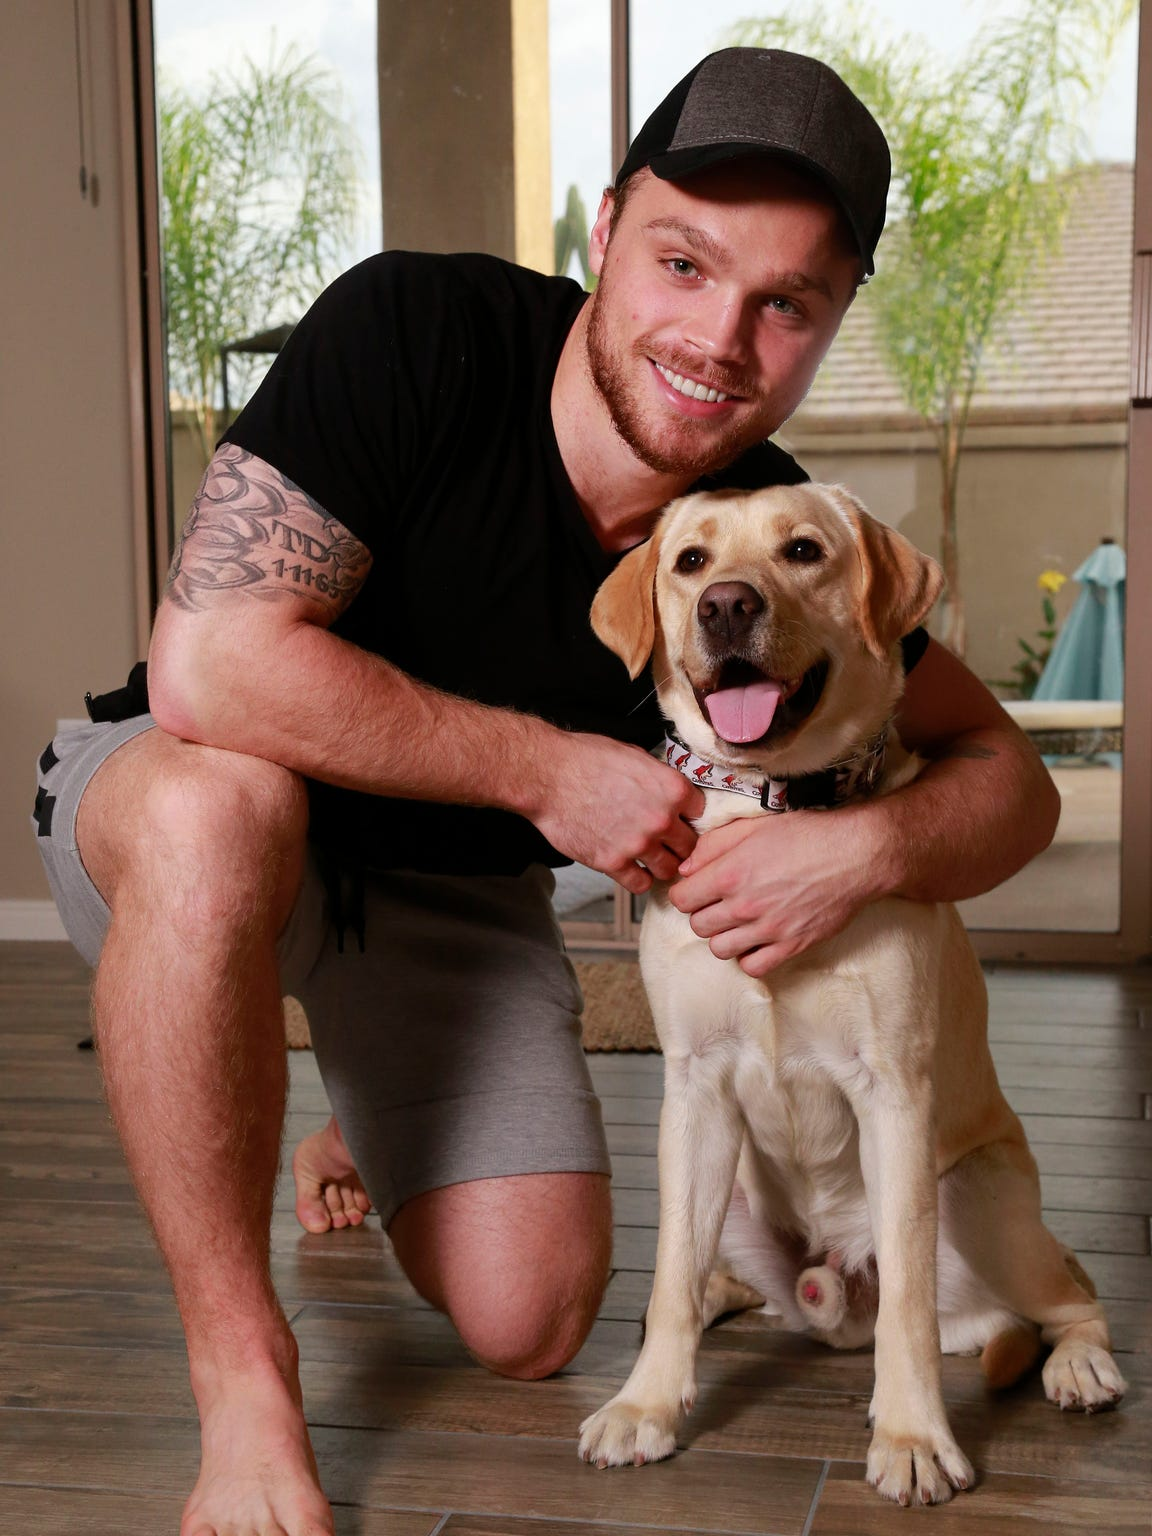 Arizona Coyotes rookie Max Domi's diabetic-alert dog Orion can sniff out when the left winger has low blood sugar.